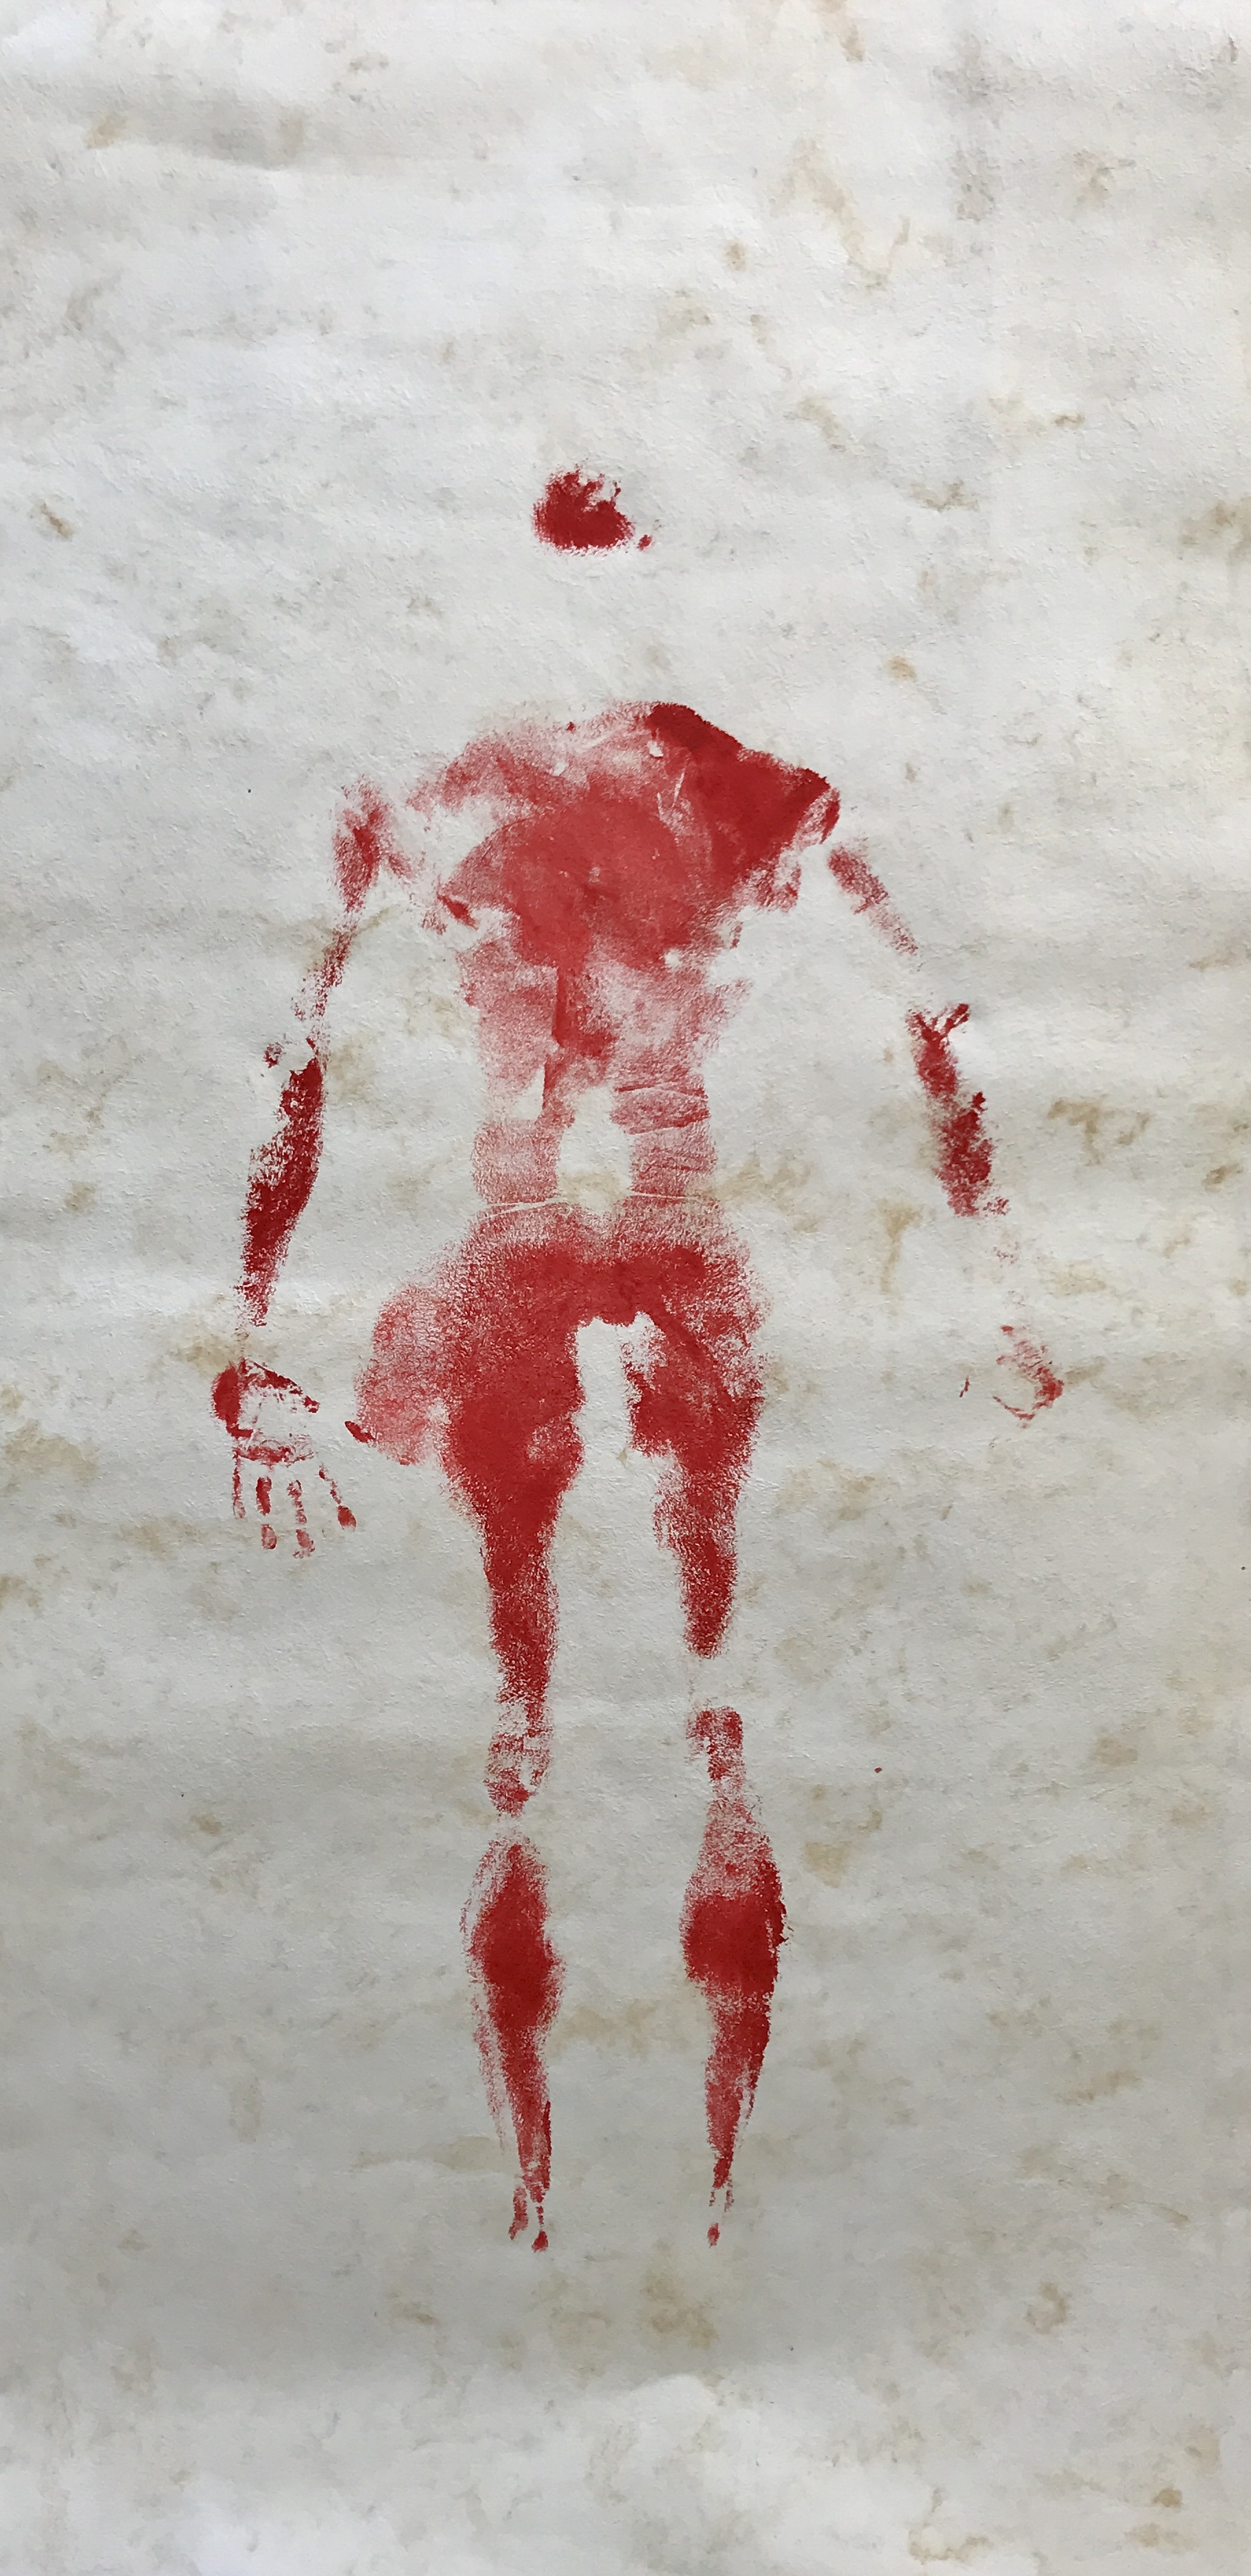 2017  Body print with acrylic paint on amate paper  244 x 122 cm